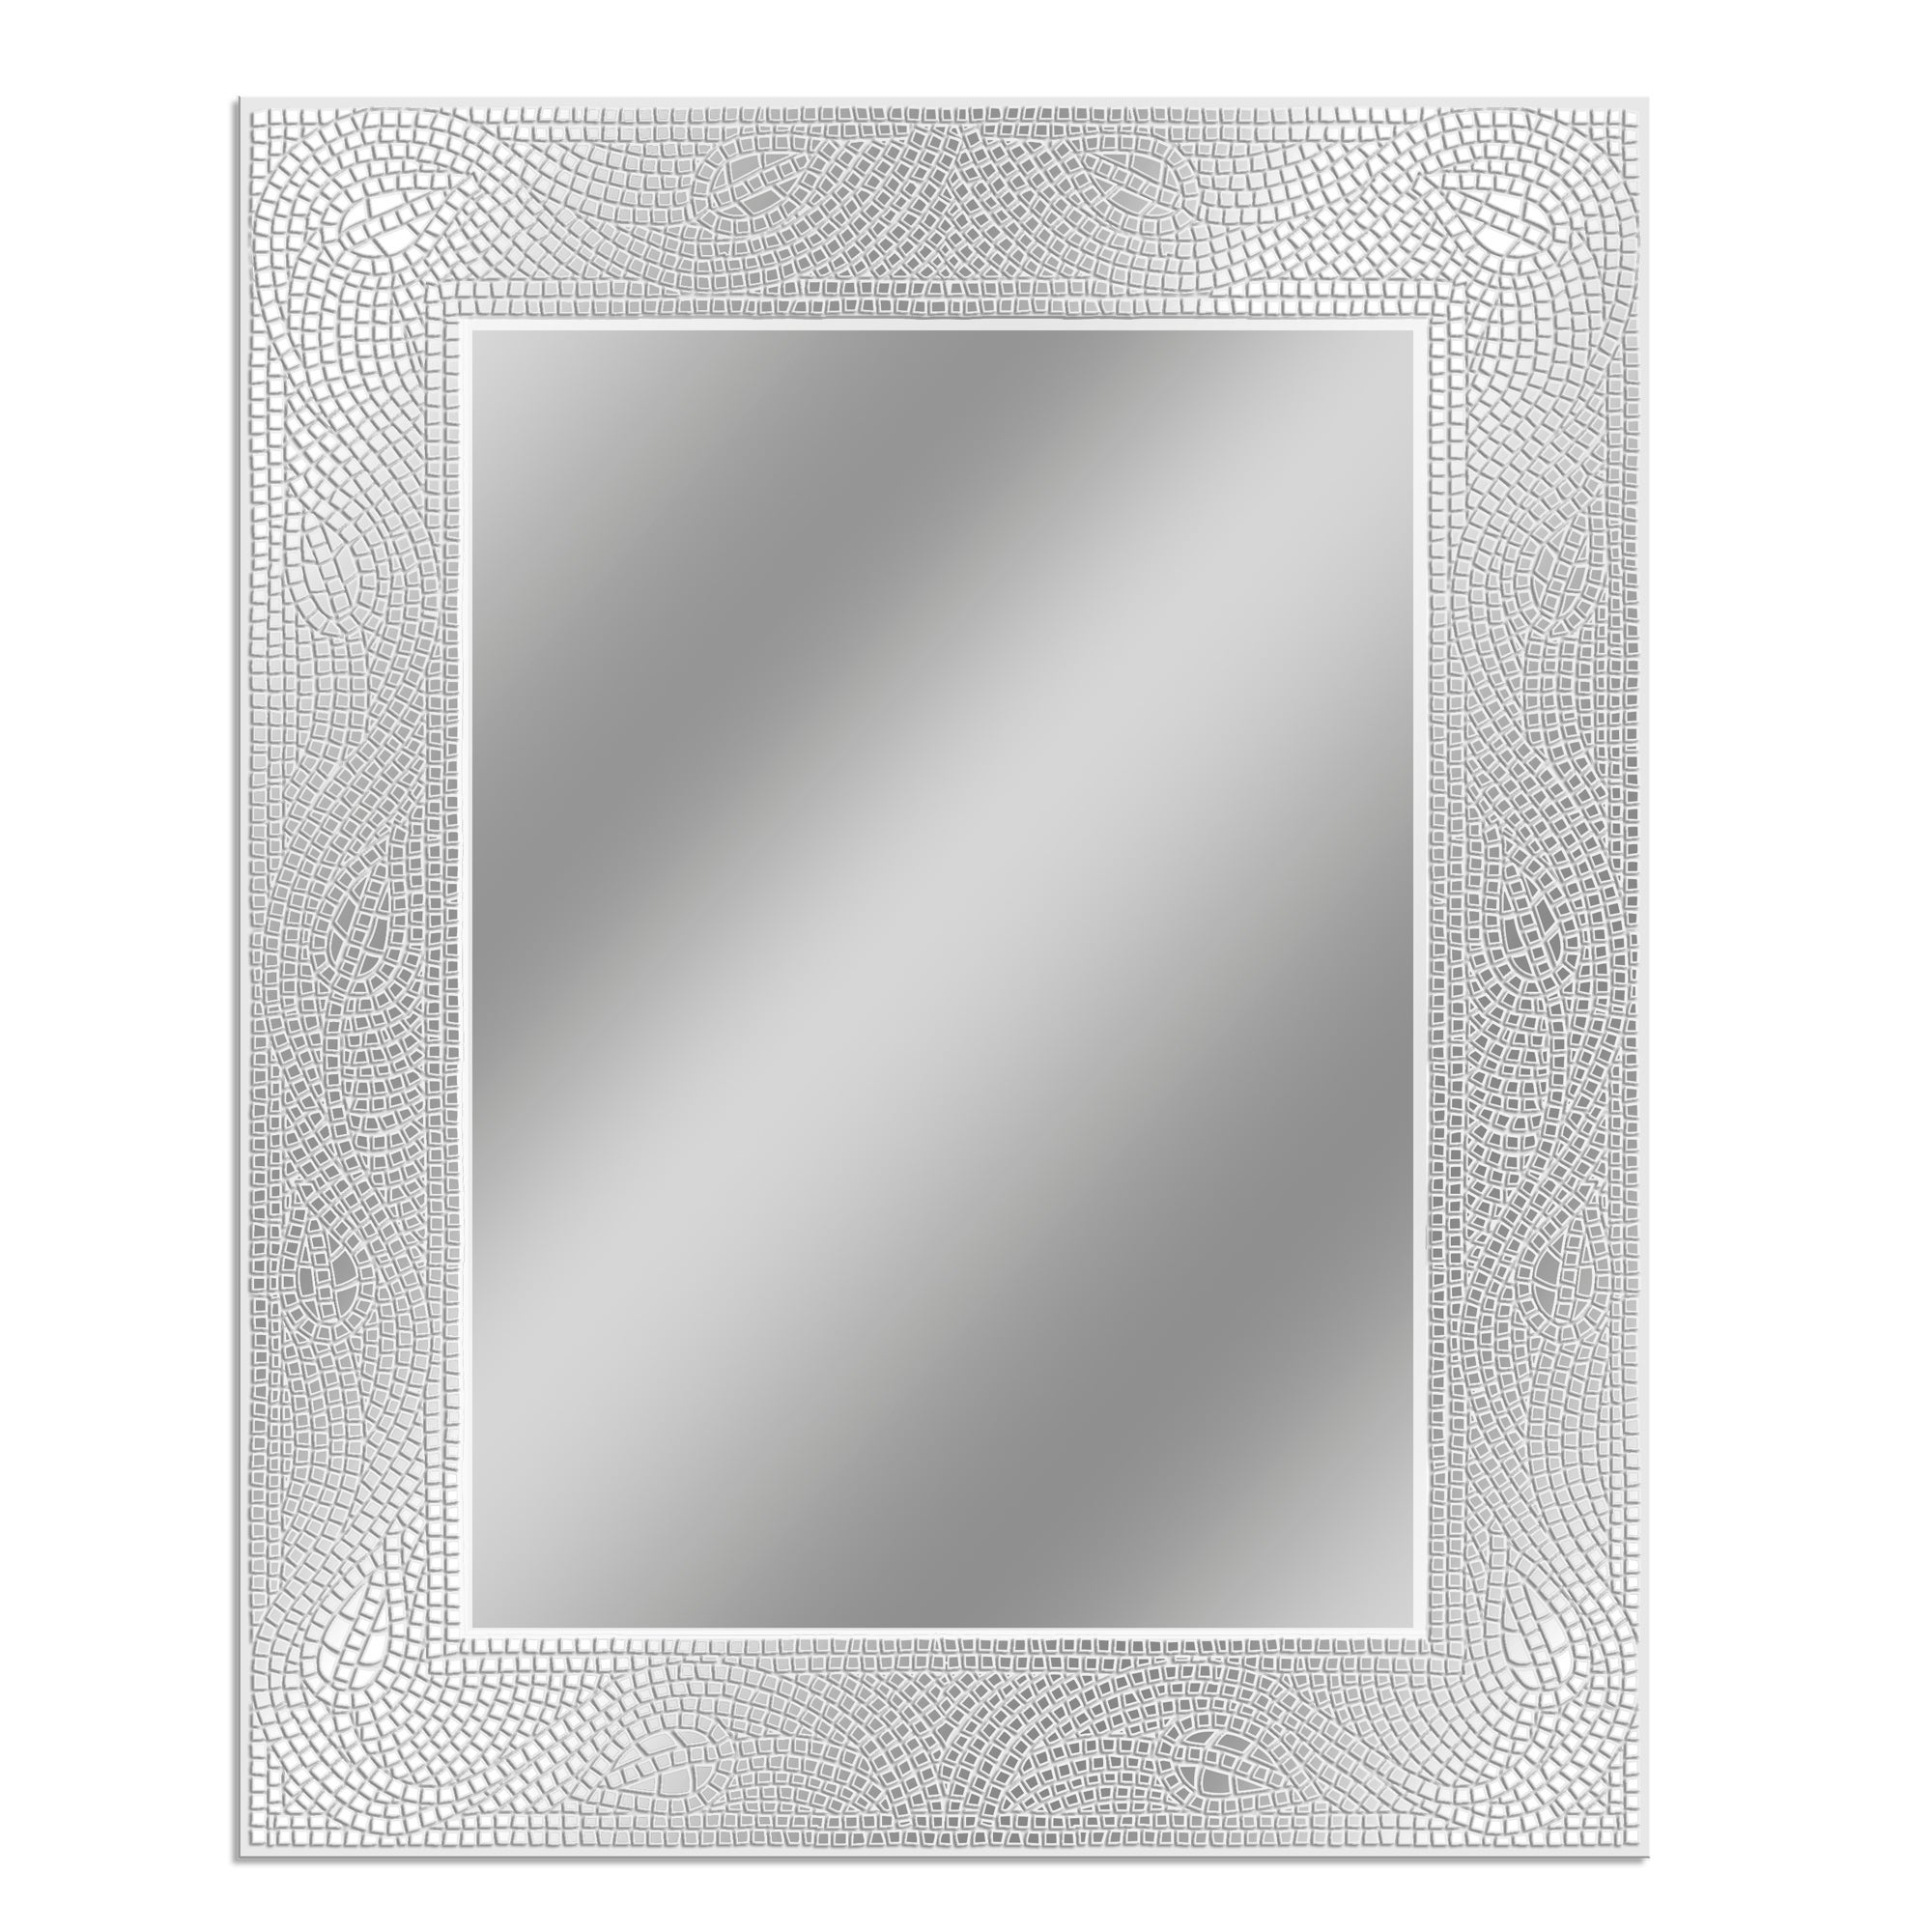 2020 Crystal Wall Mirrors For Headwest Crystal Mosaic Etched Wall Mirror – Off White – 24 X  (View 3 of 20)